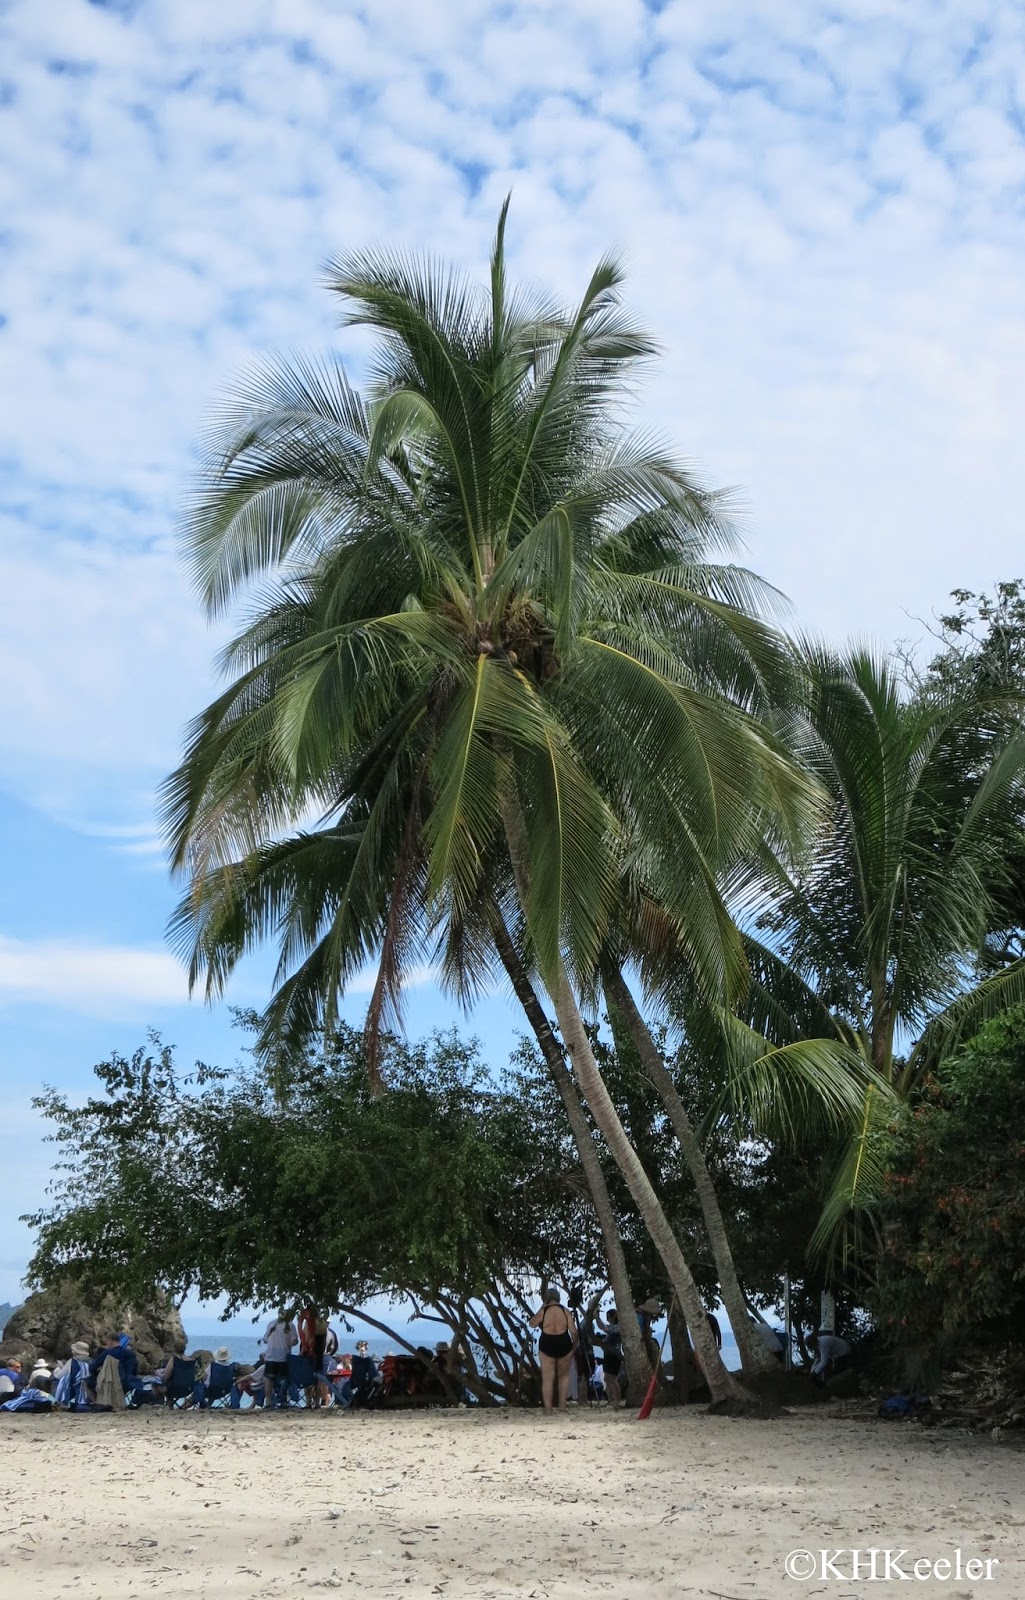 coconut palm on beach, Pacific coast, Panama